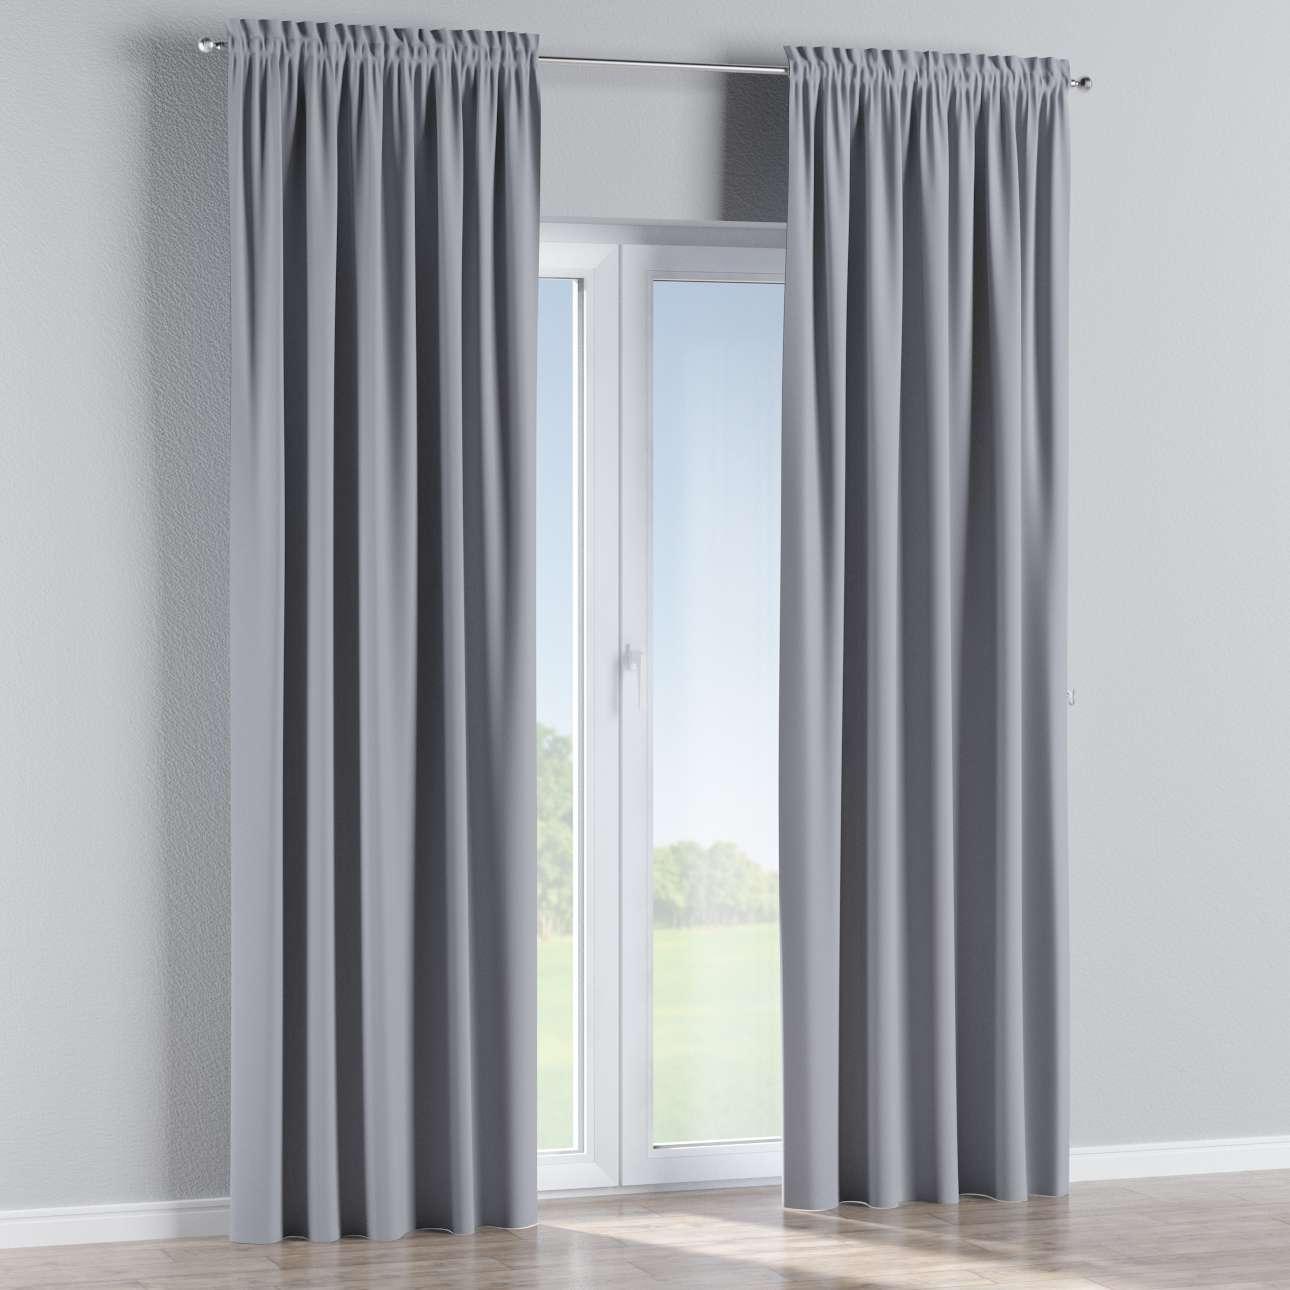 Blackout slot and frill curtains 140 x 260 cm (approx. 55 x 102 inch) in collection Blackout, fabric: 269-96